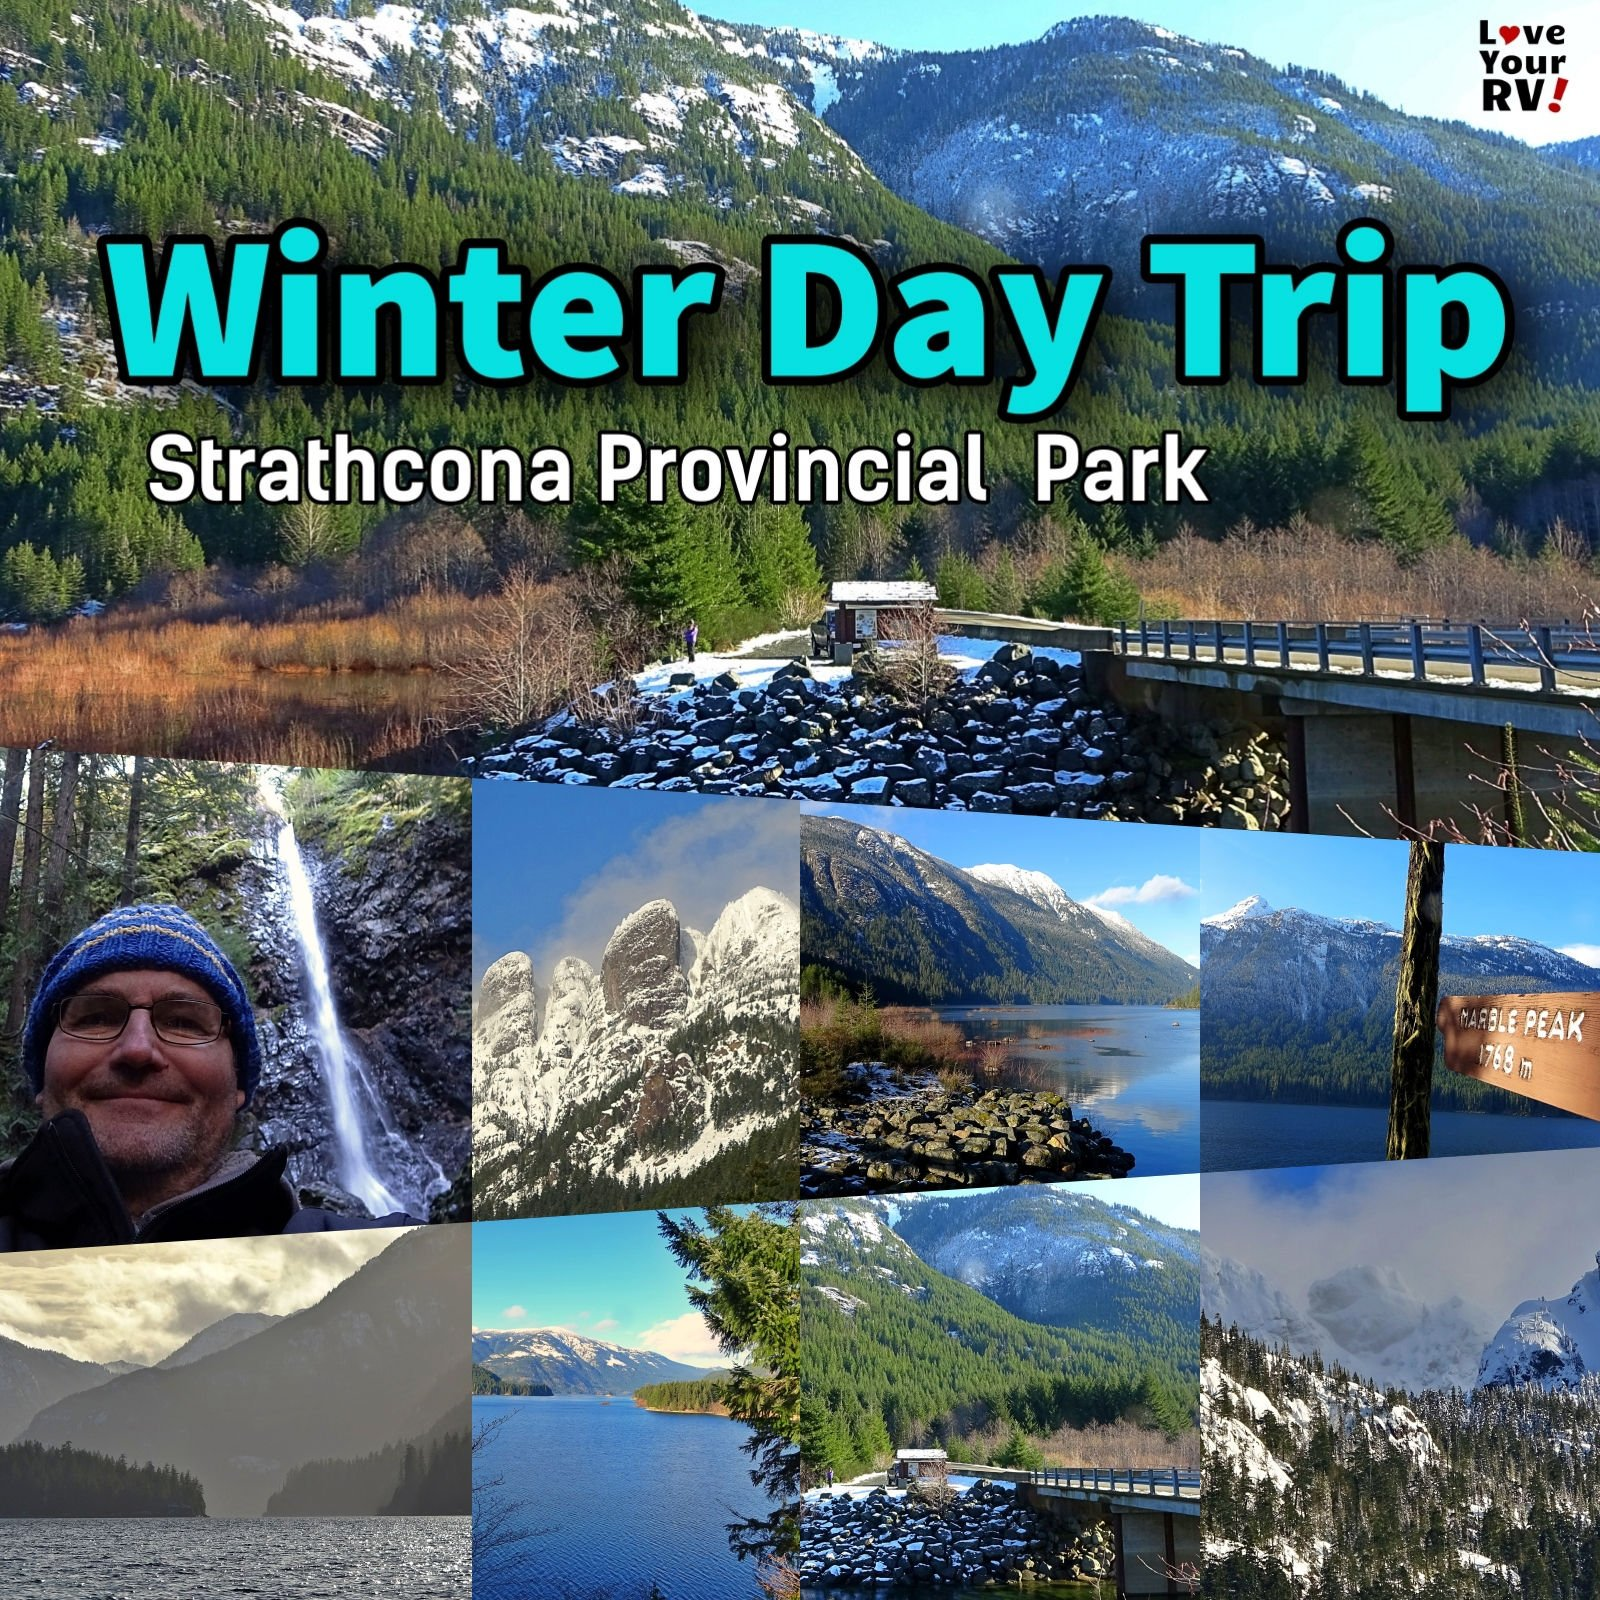 Winter day trip out to beautiful Strathcona Provincial Park on Vancouver Island British Columbia Canada